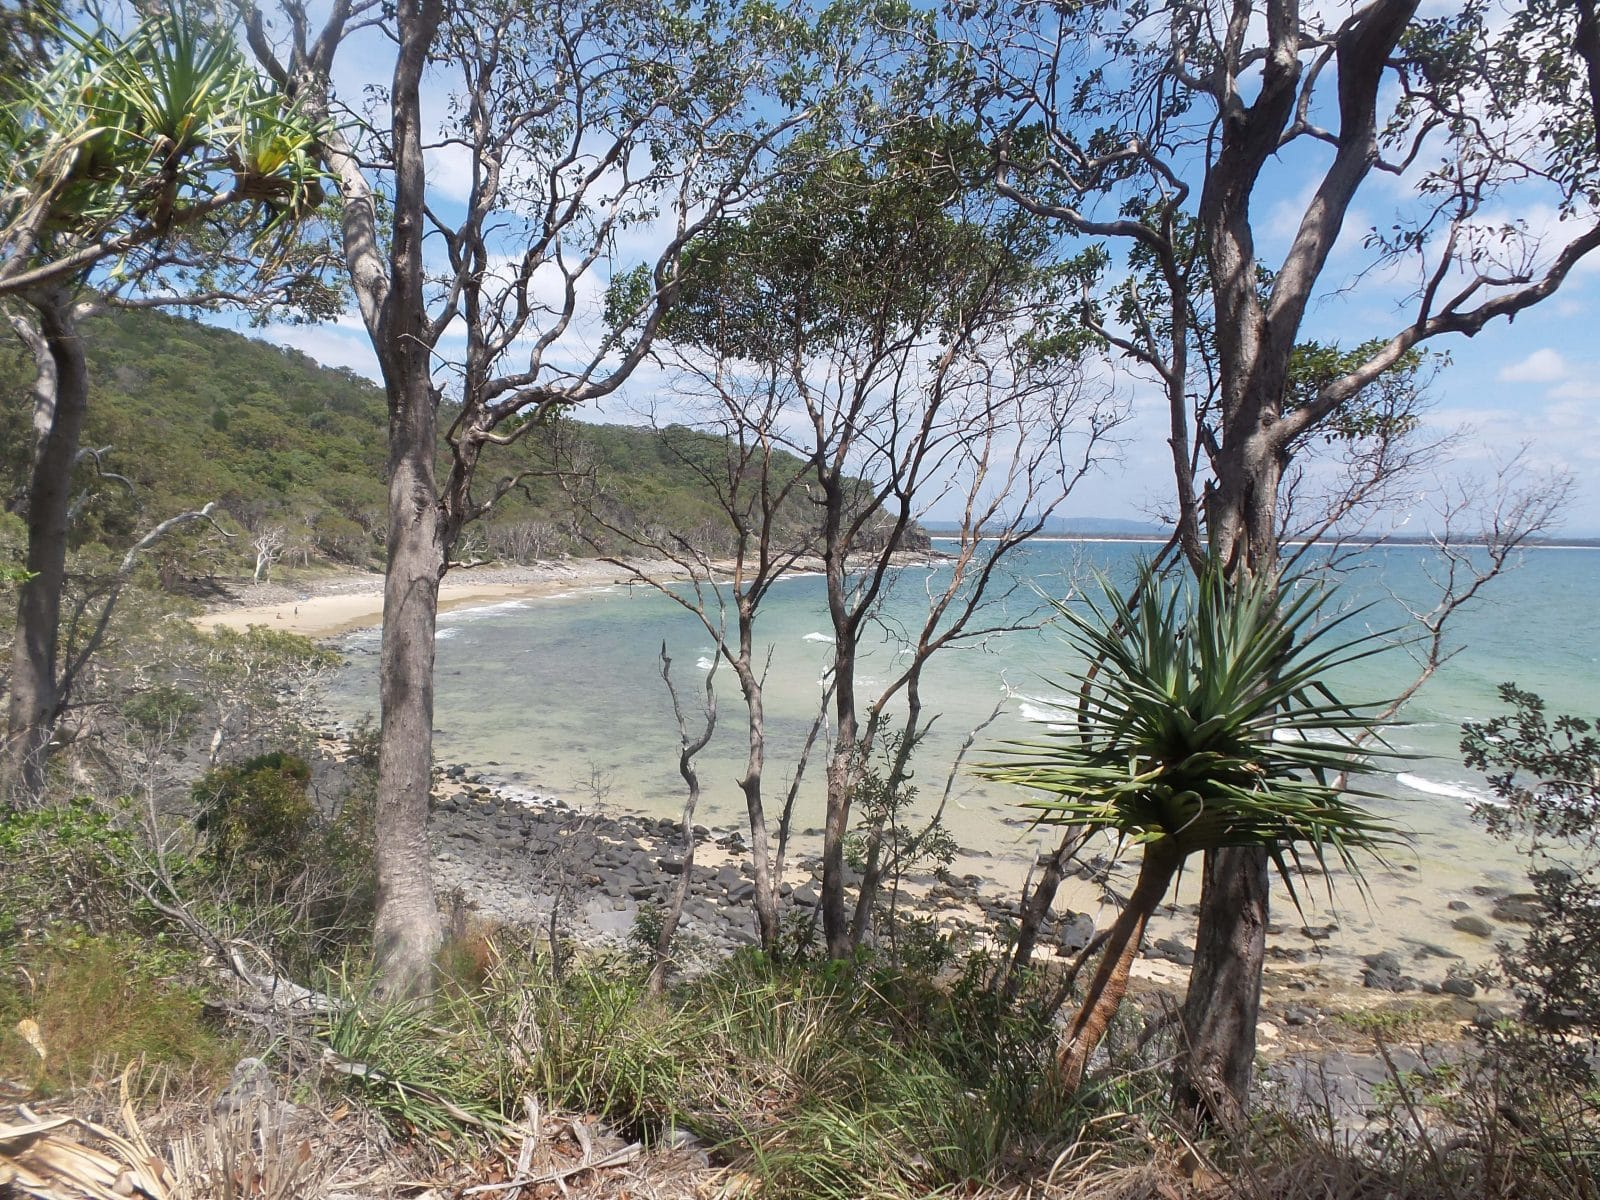 Beaches from Noosa National Park, Queensland